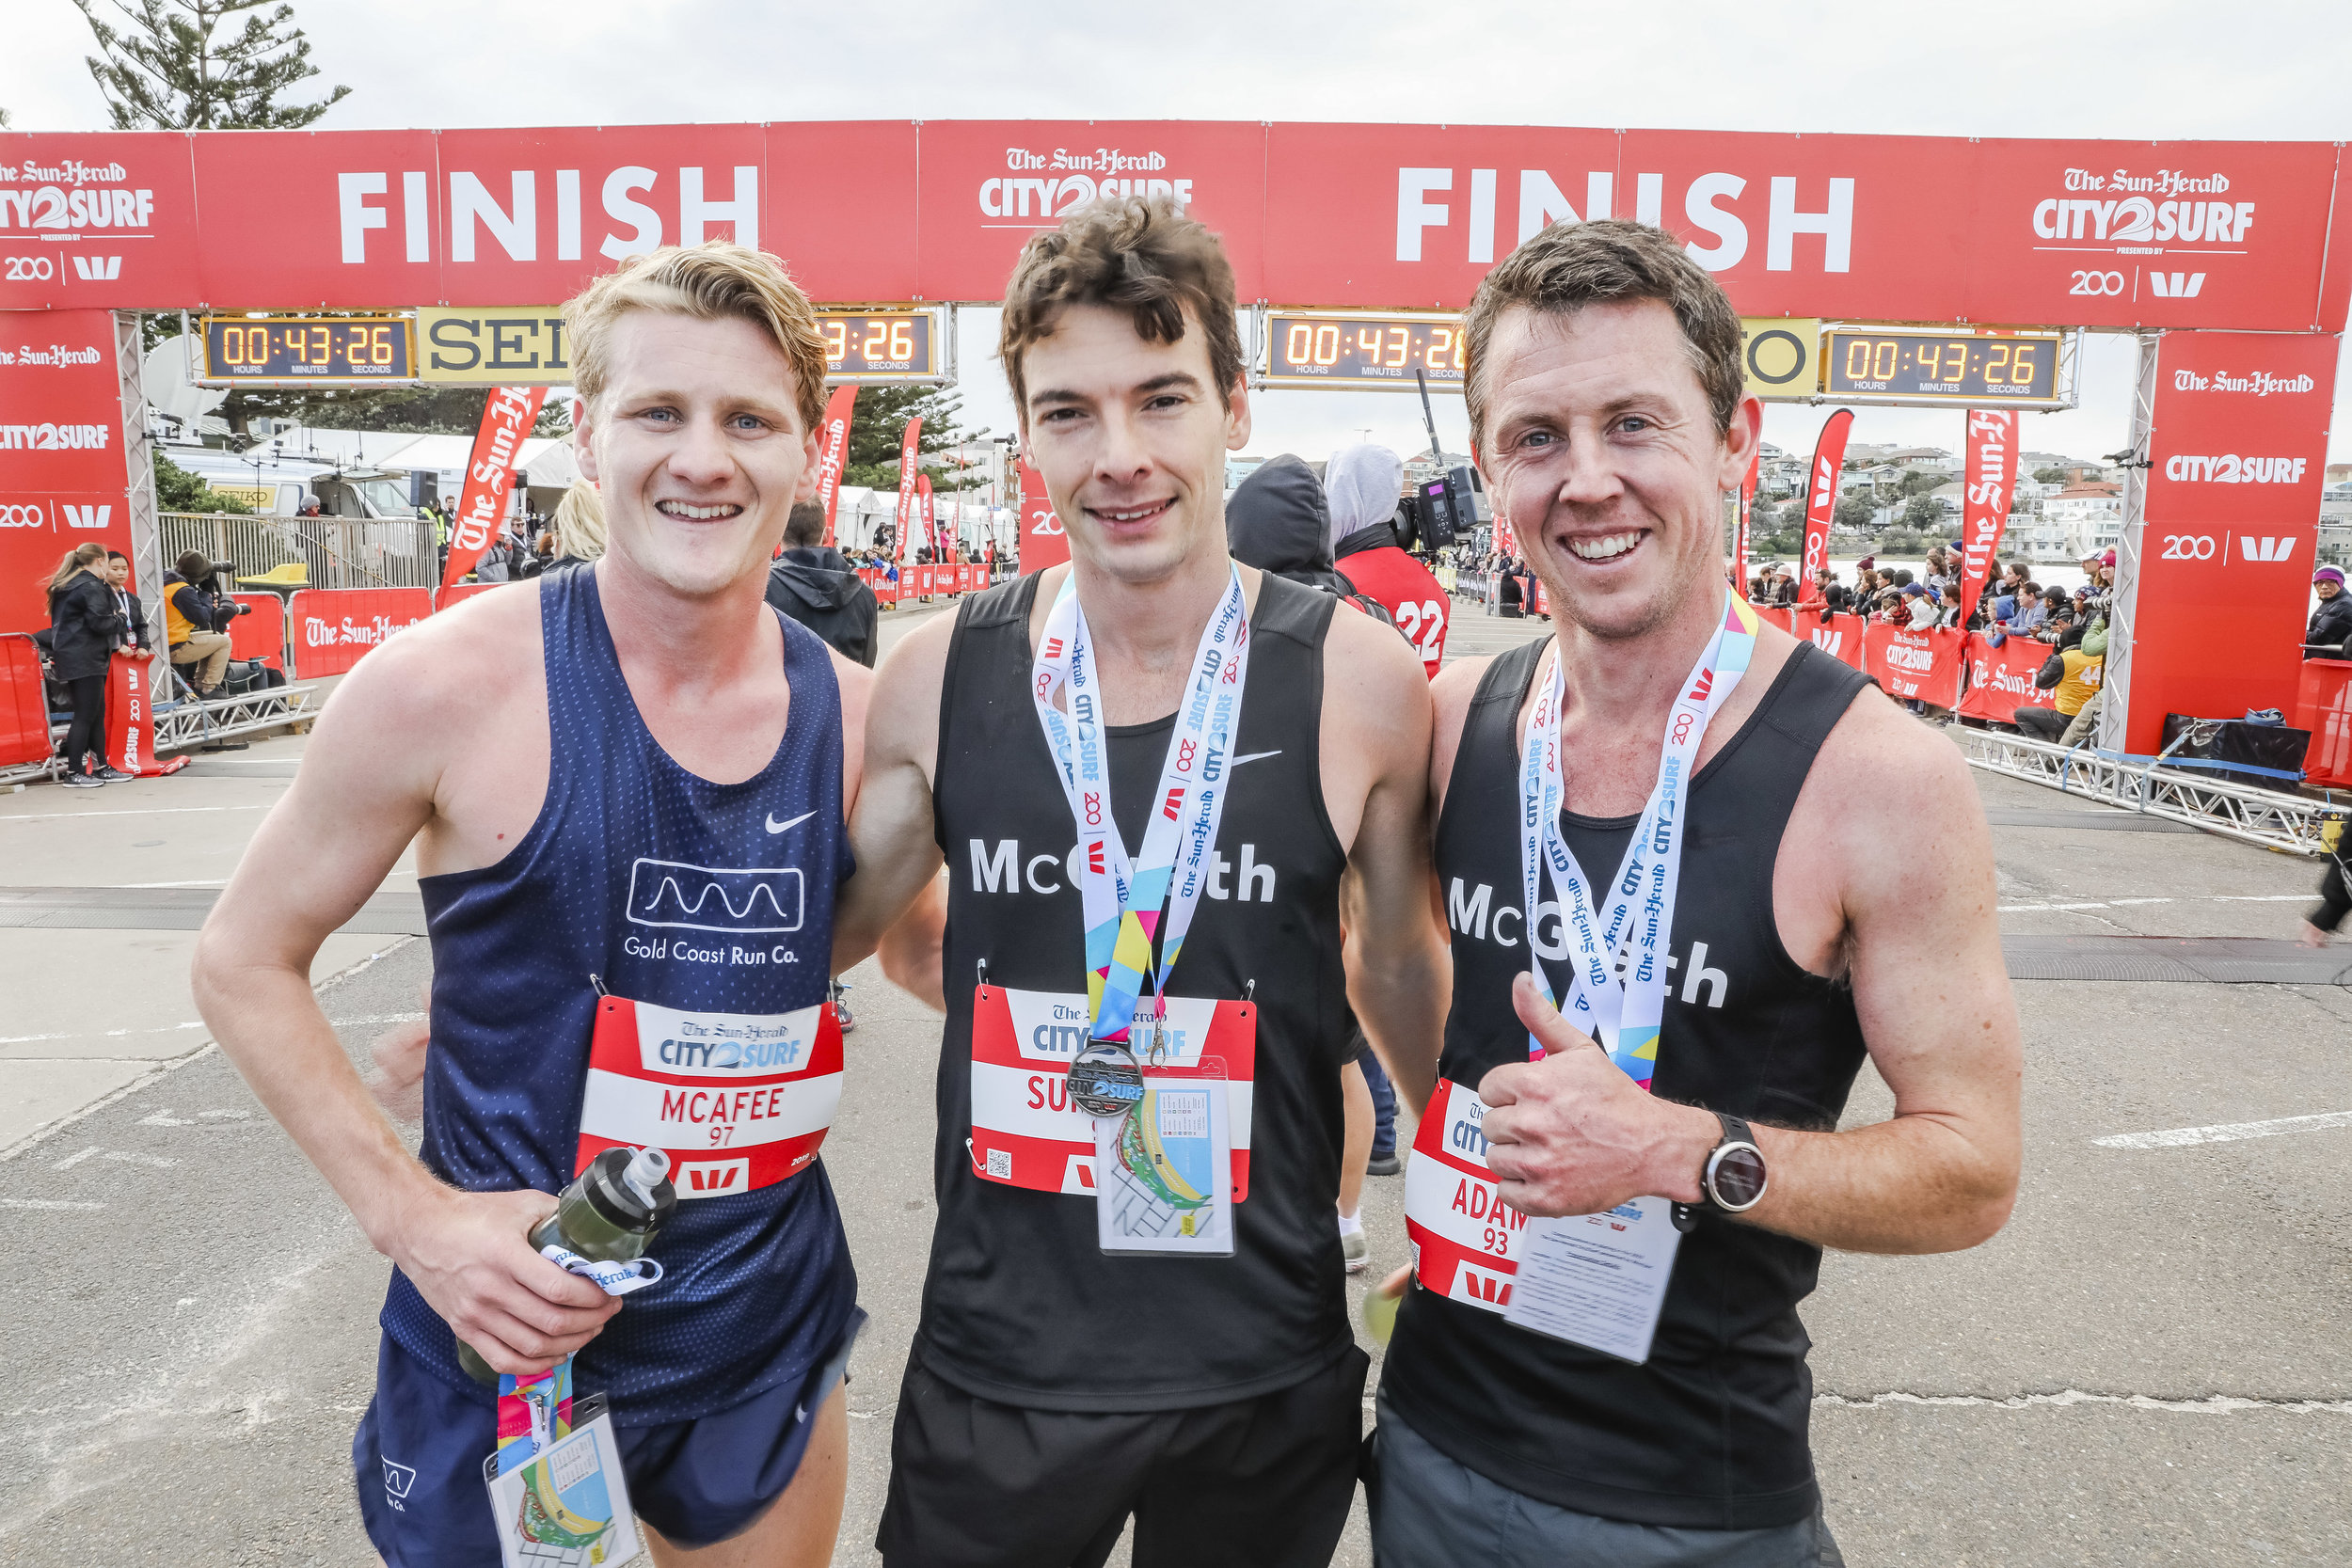 The Sun-Herald City2Surf © Salty Dingo 2019 CG-9308.jpg